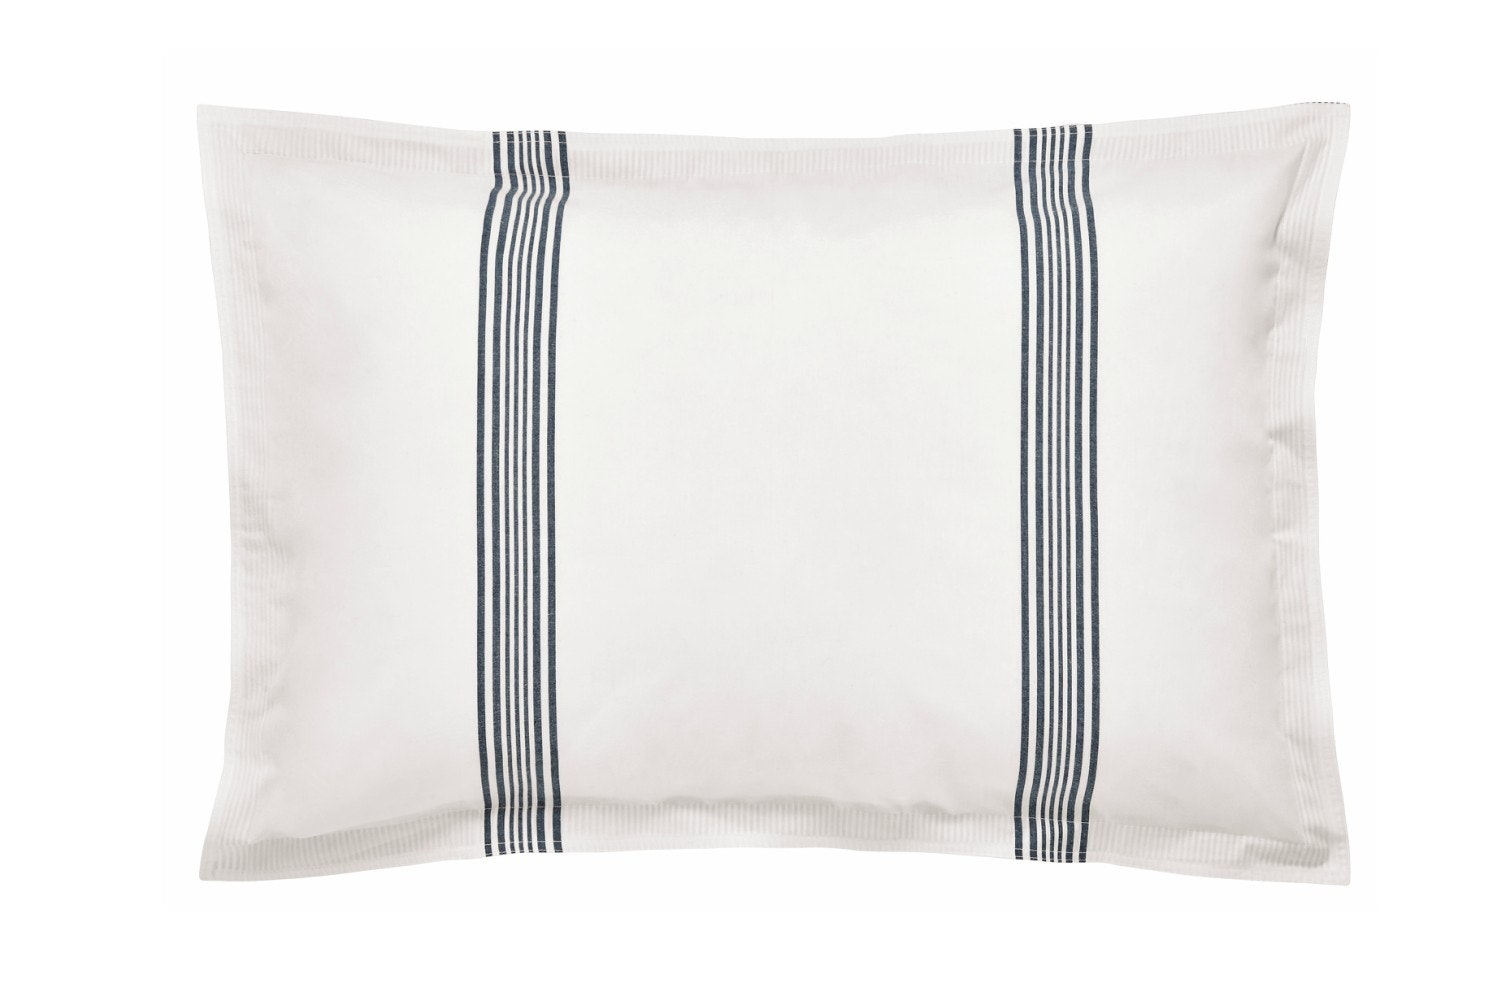 Murmur Broad Stripe Oxford Pillowcase White & Indigo